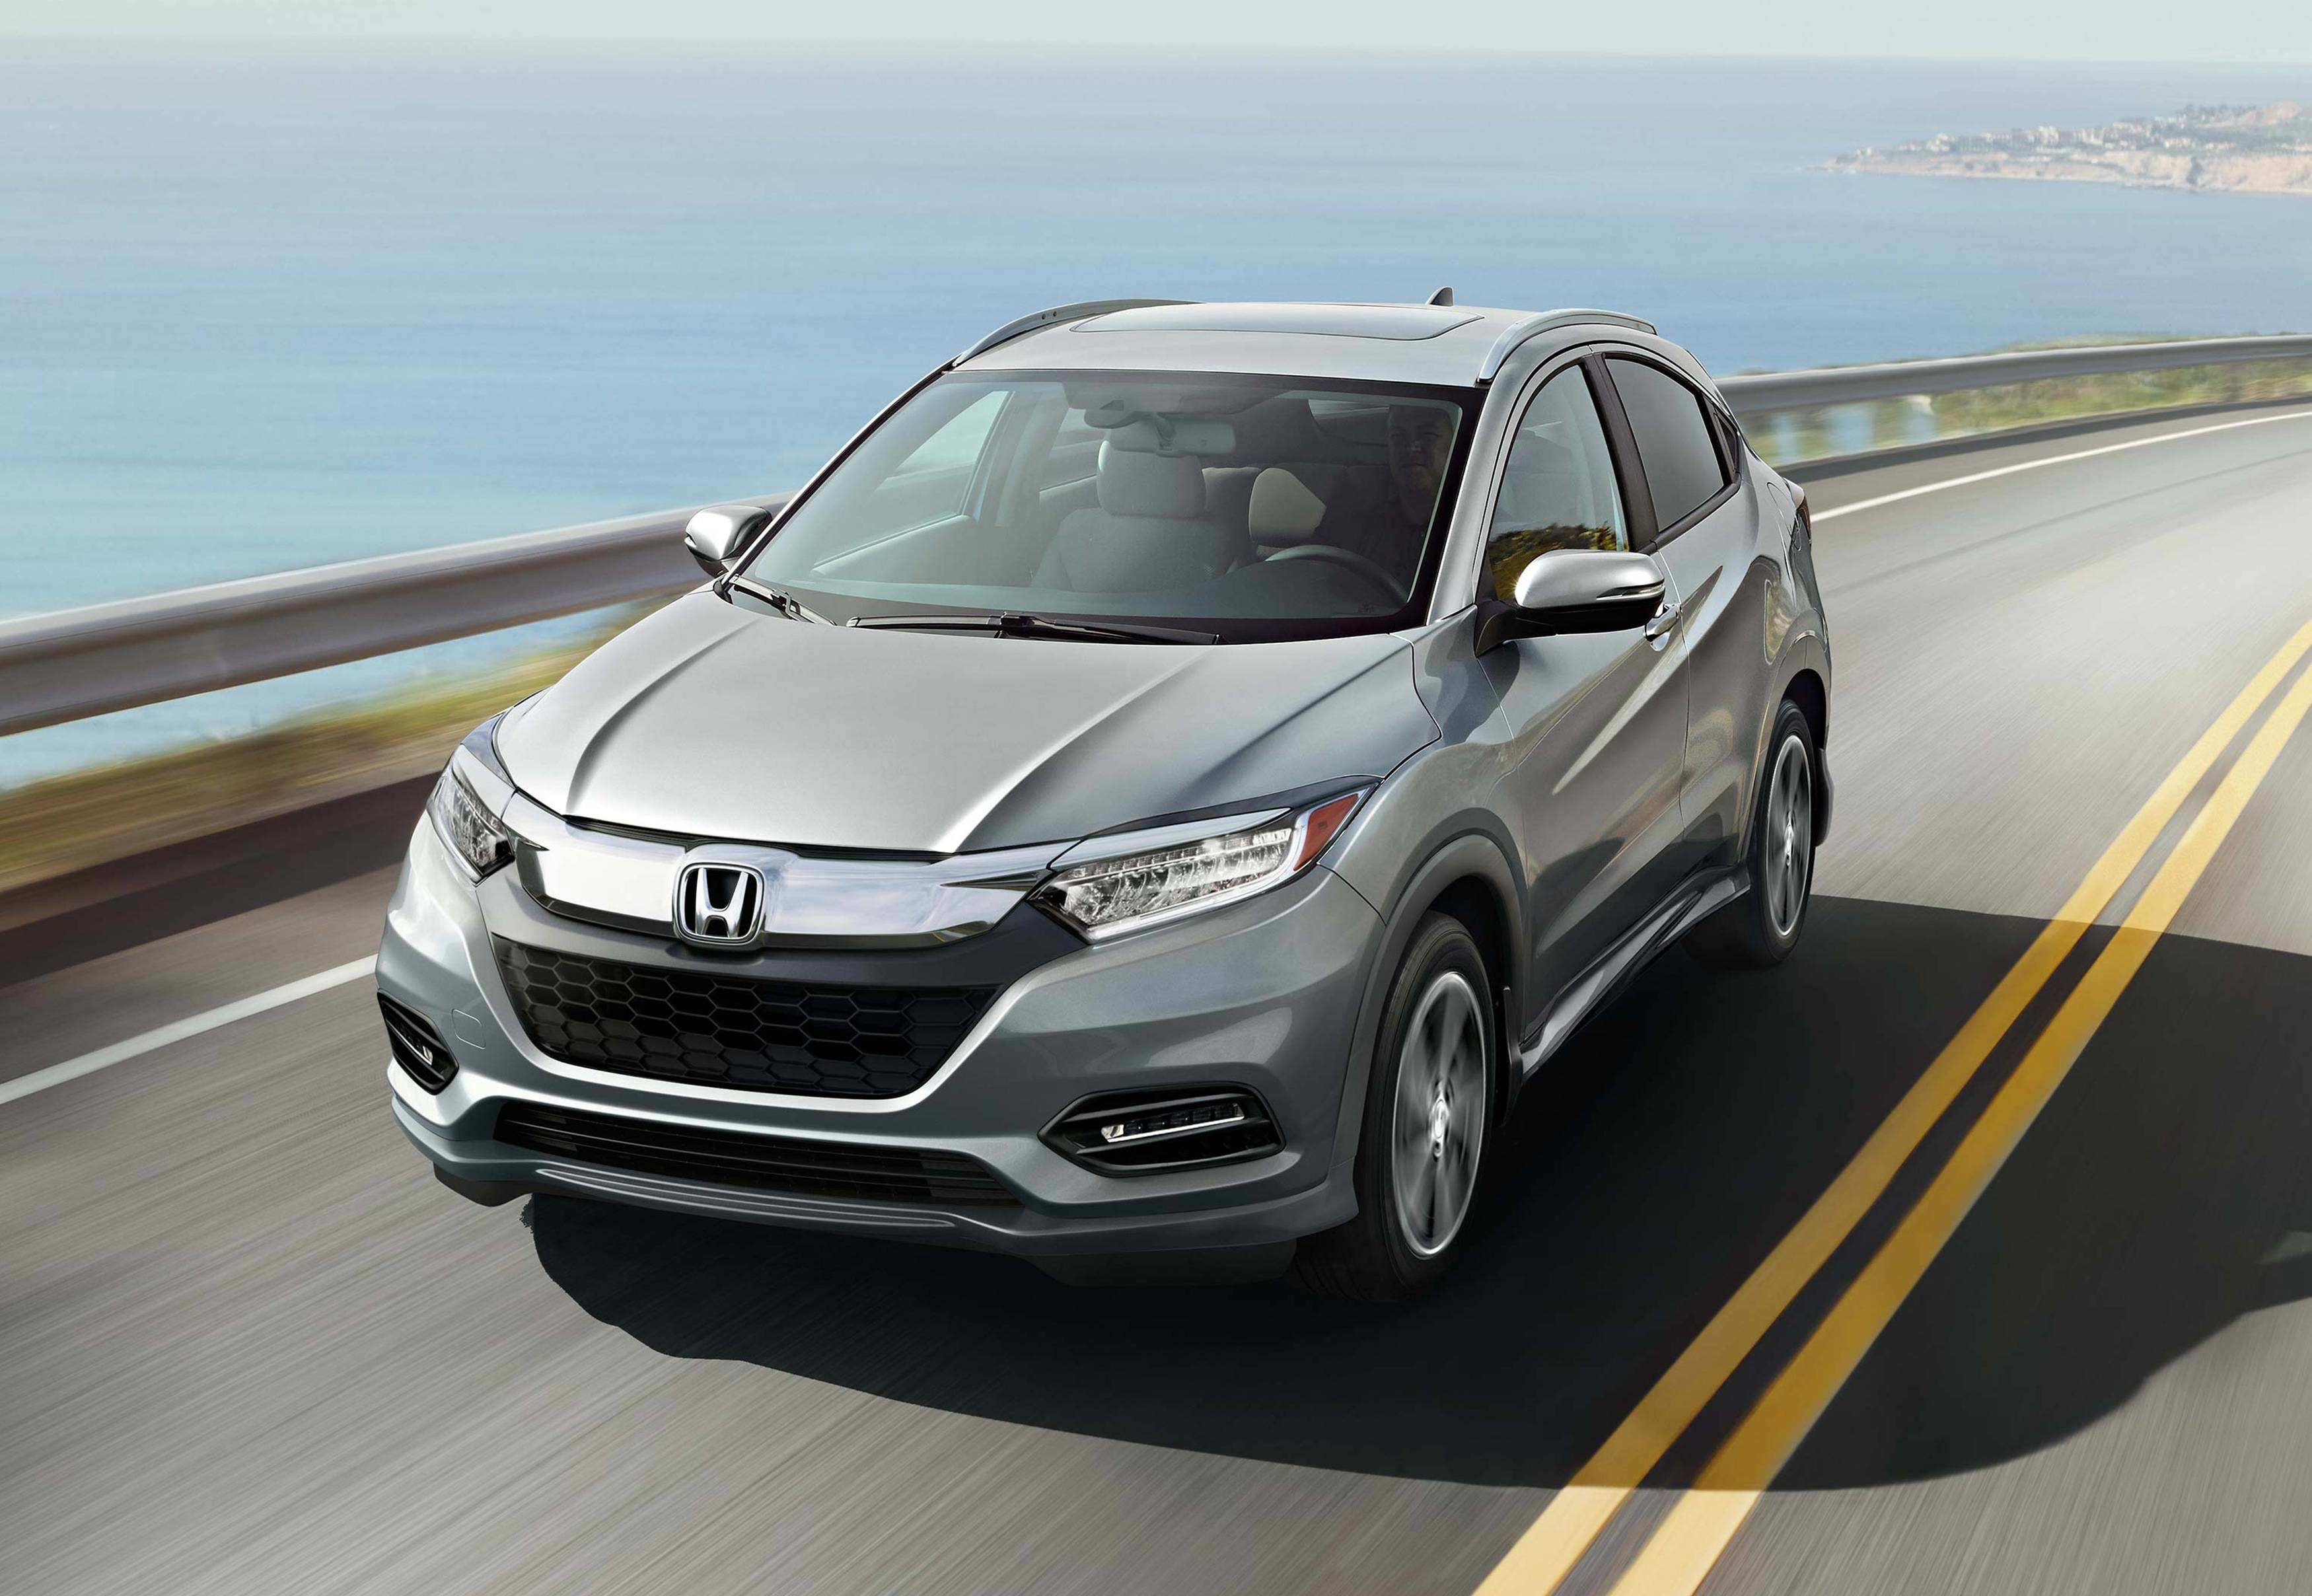 Honda Fit and the Honda HR-V